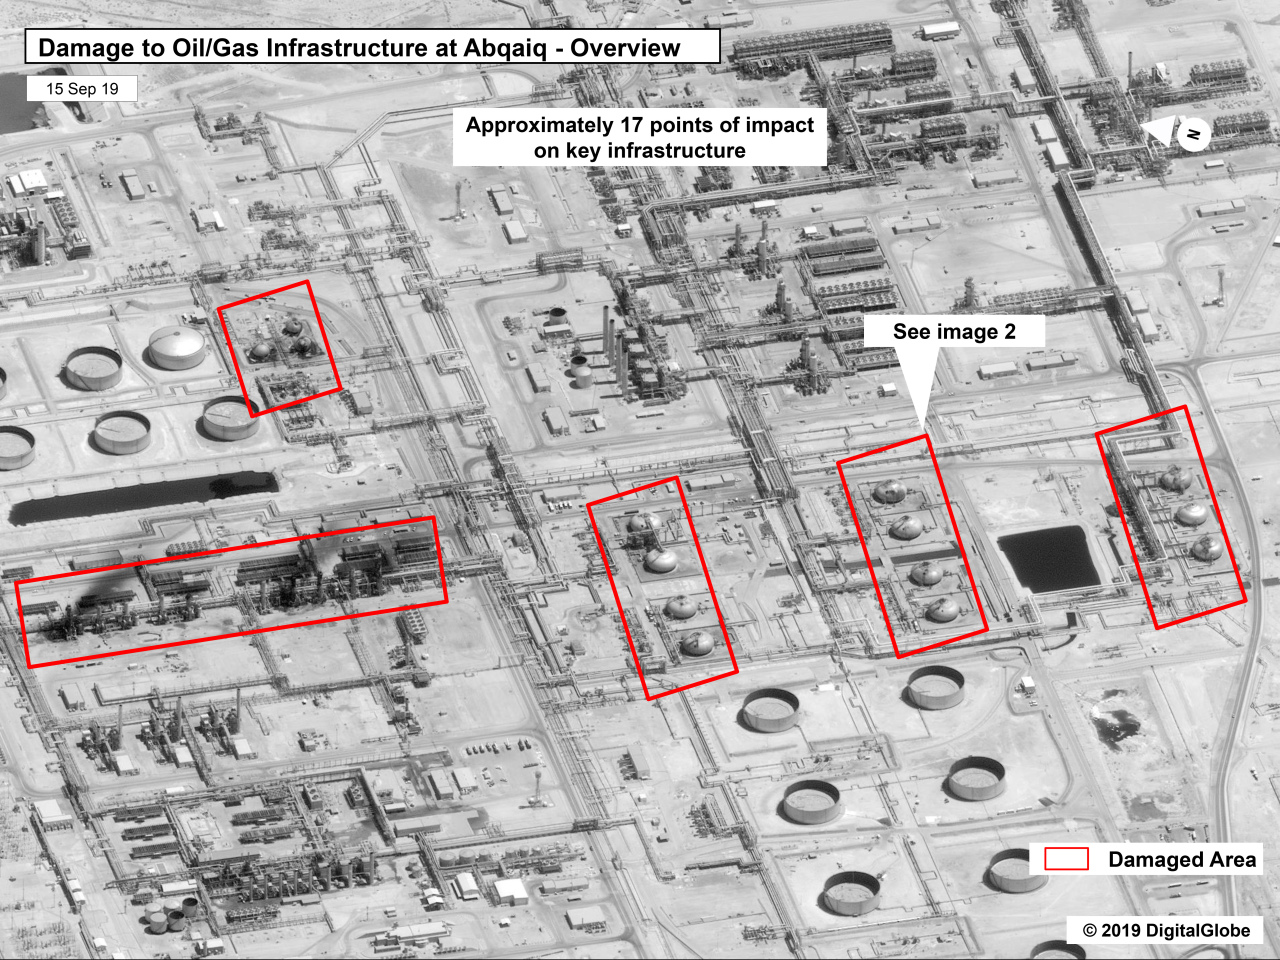 This image provided Sunday by the US government and DigitalGlobe and annotaed by the source, shows damage to the infrastructure at Saudi Aramco'a Abaqaiq oil processing facility in Buqyaq, Saudi Arabia. (AP-Yonhap)